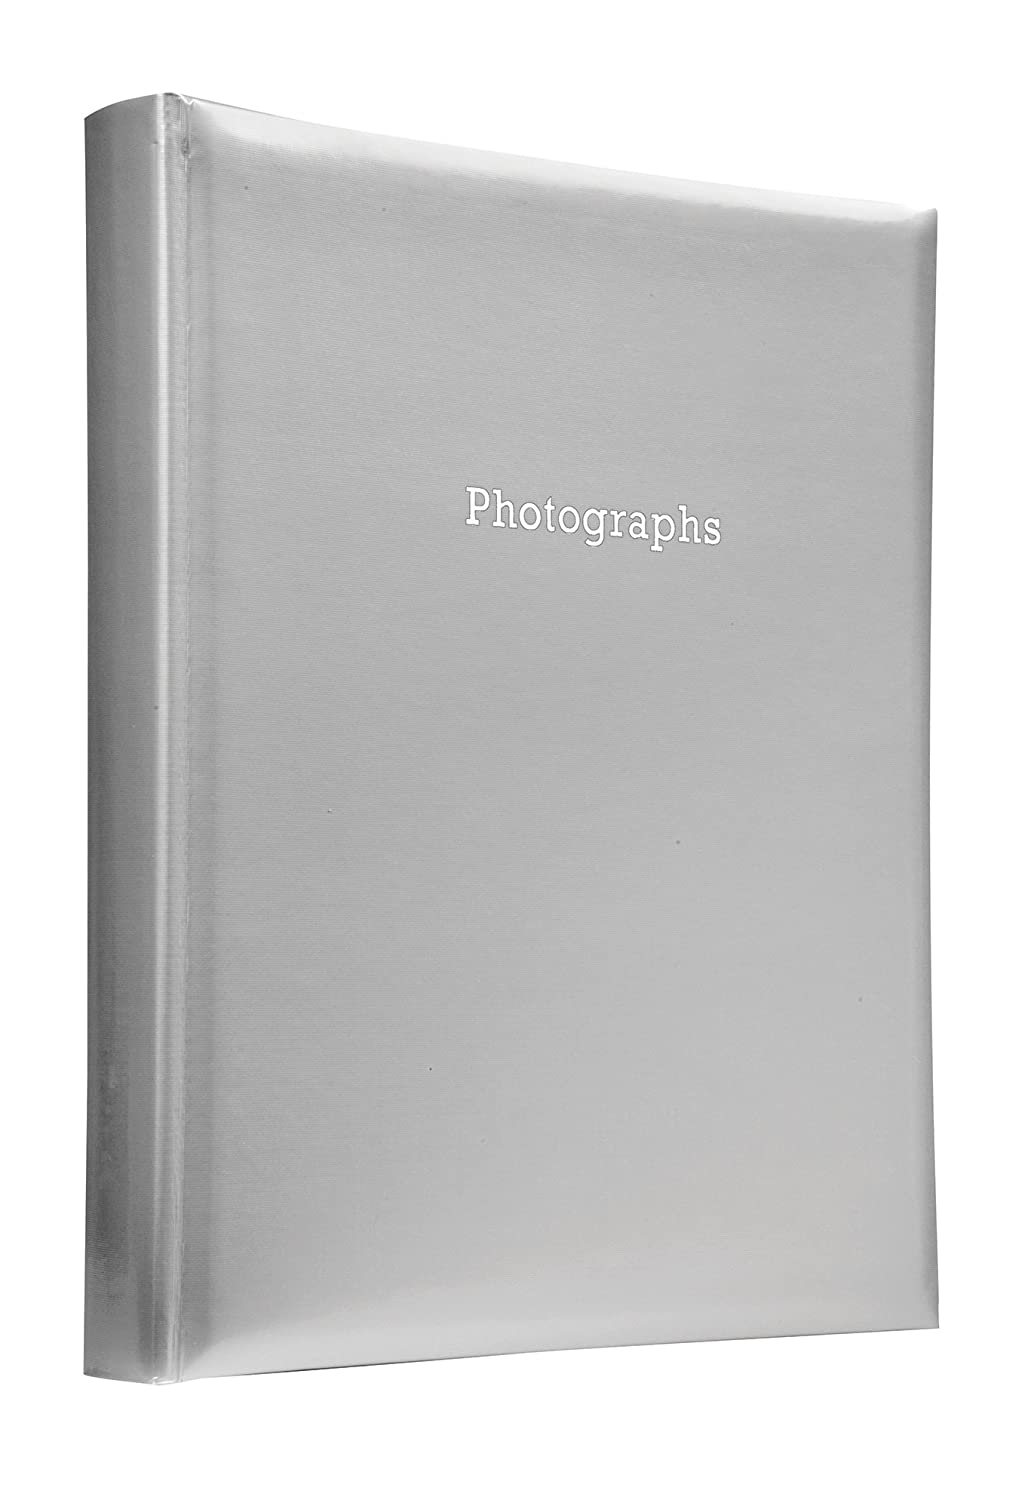 Deluxe Large Silver Self Adhesive Photo Album Hold Various Sized Photos 50 Pages Pfennig N Squid Ltd